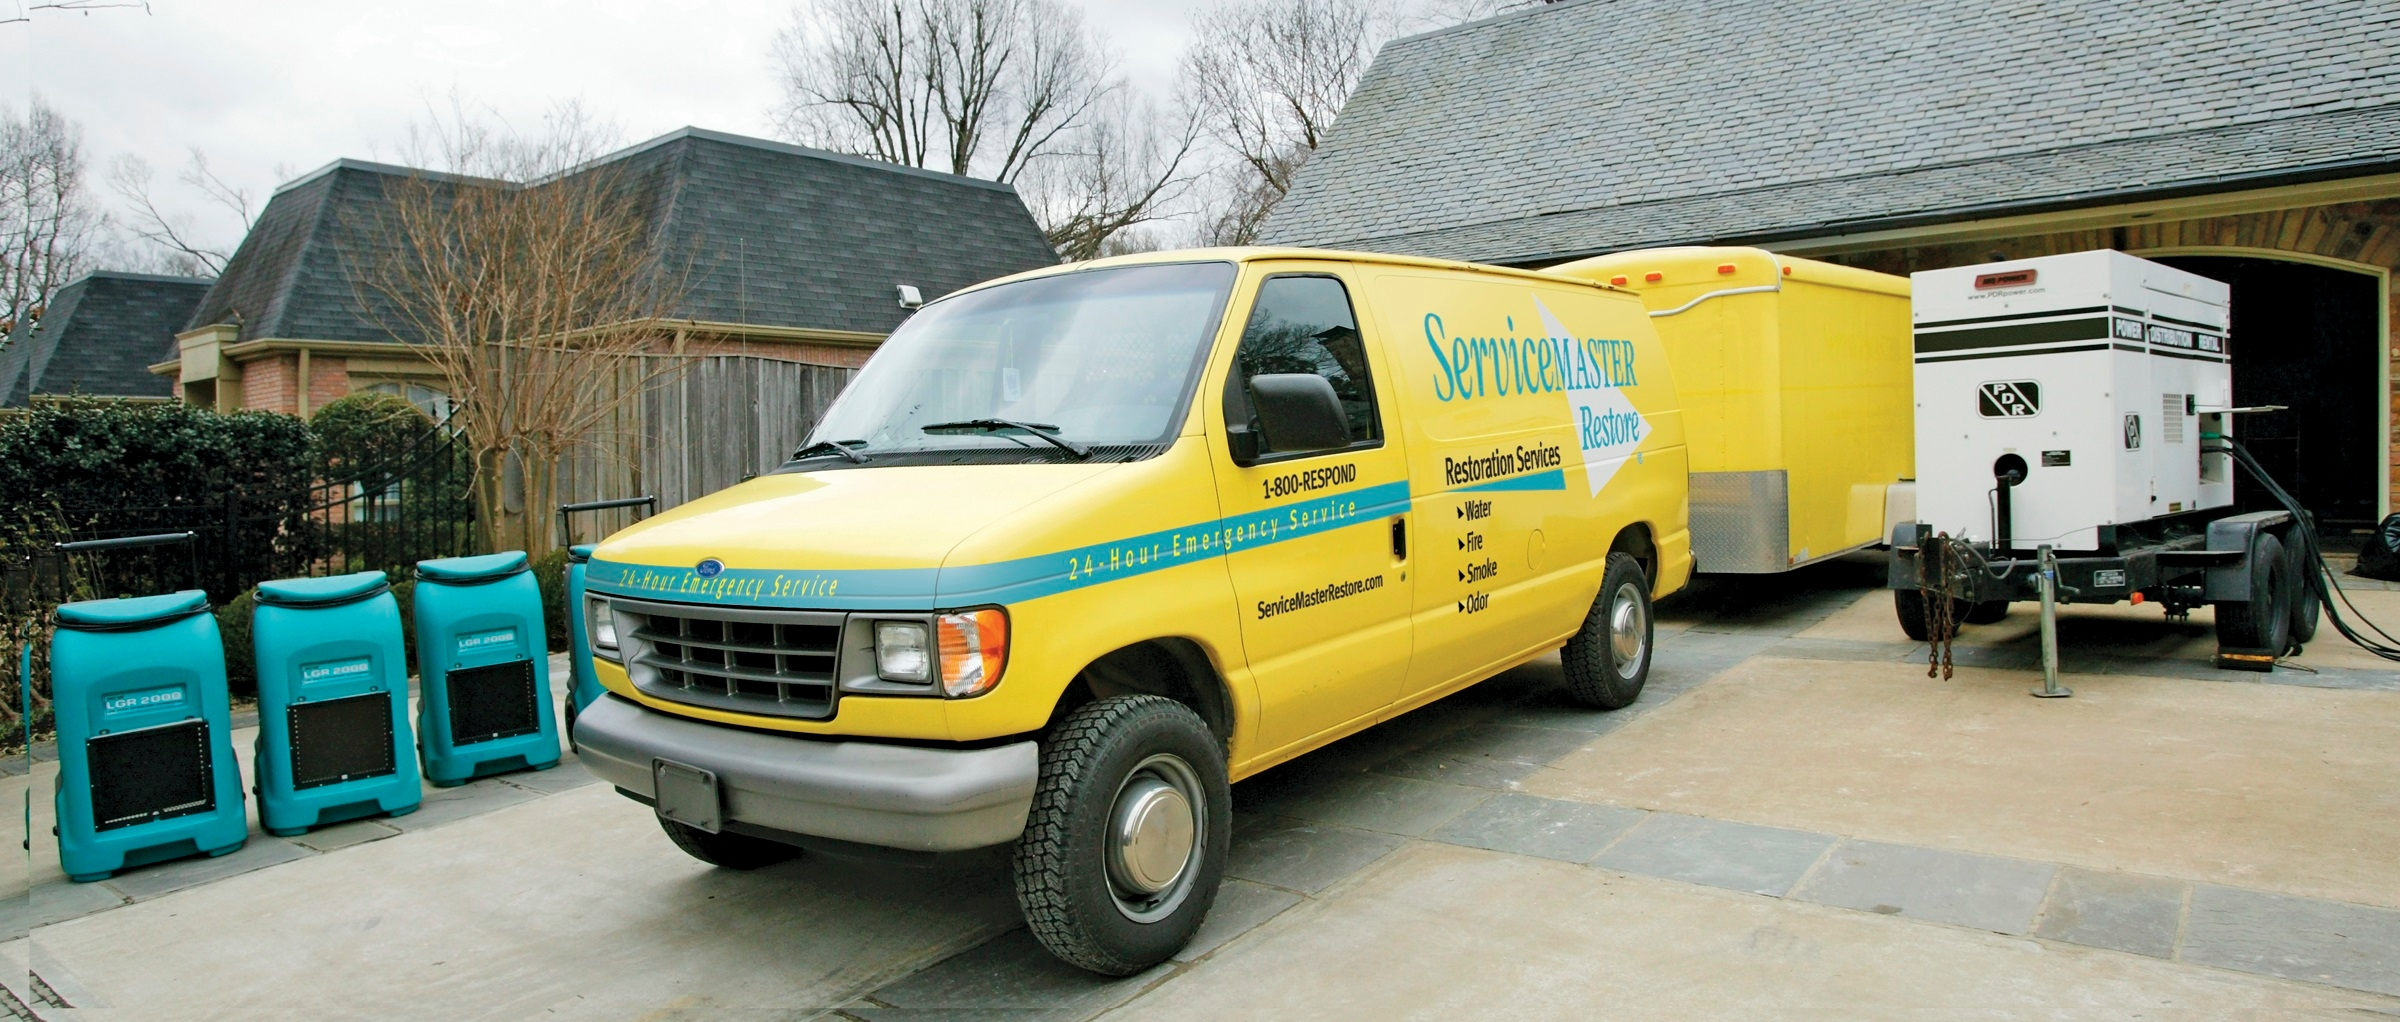 ServiceMaster Cleaning and Restoration by Clean in a Wink image 12